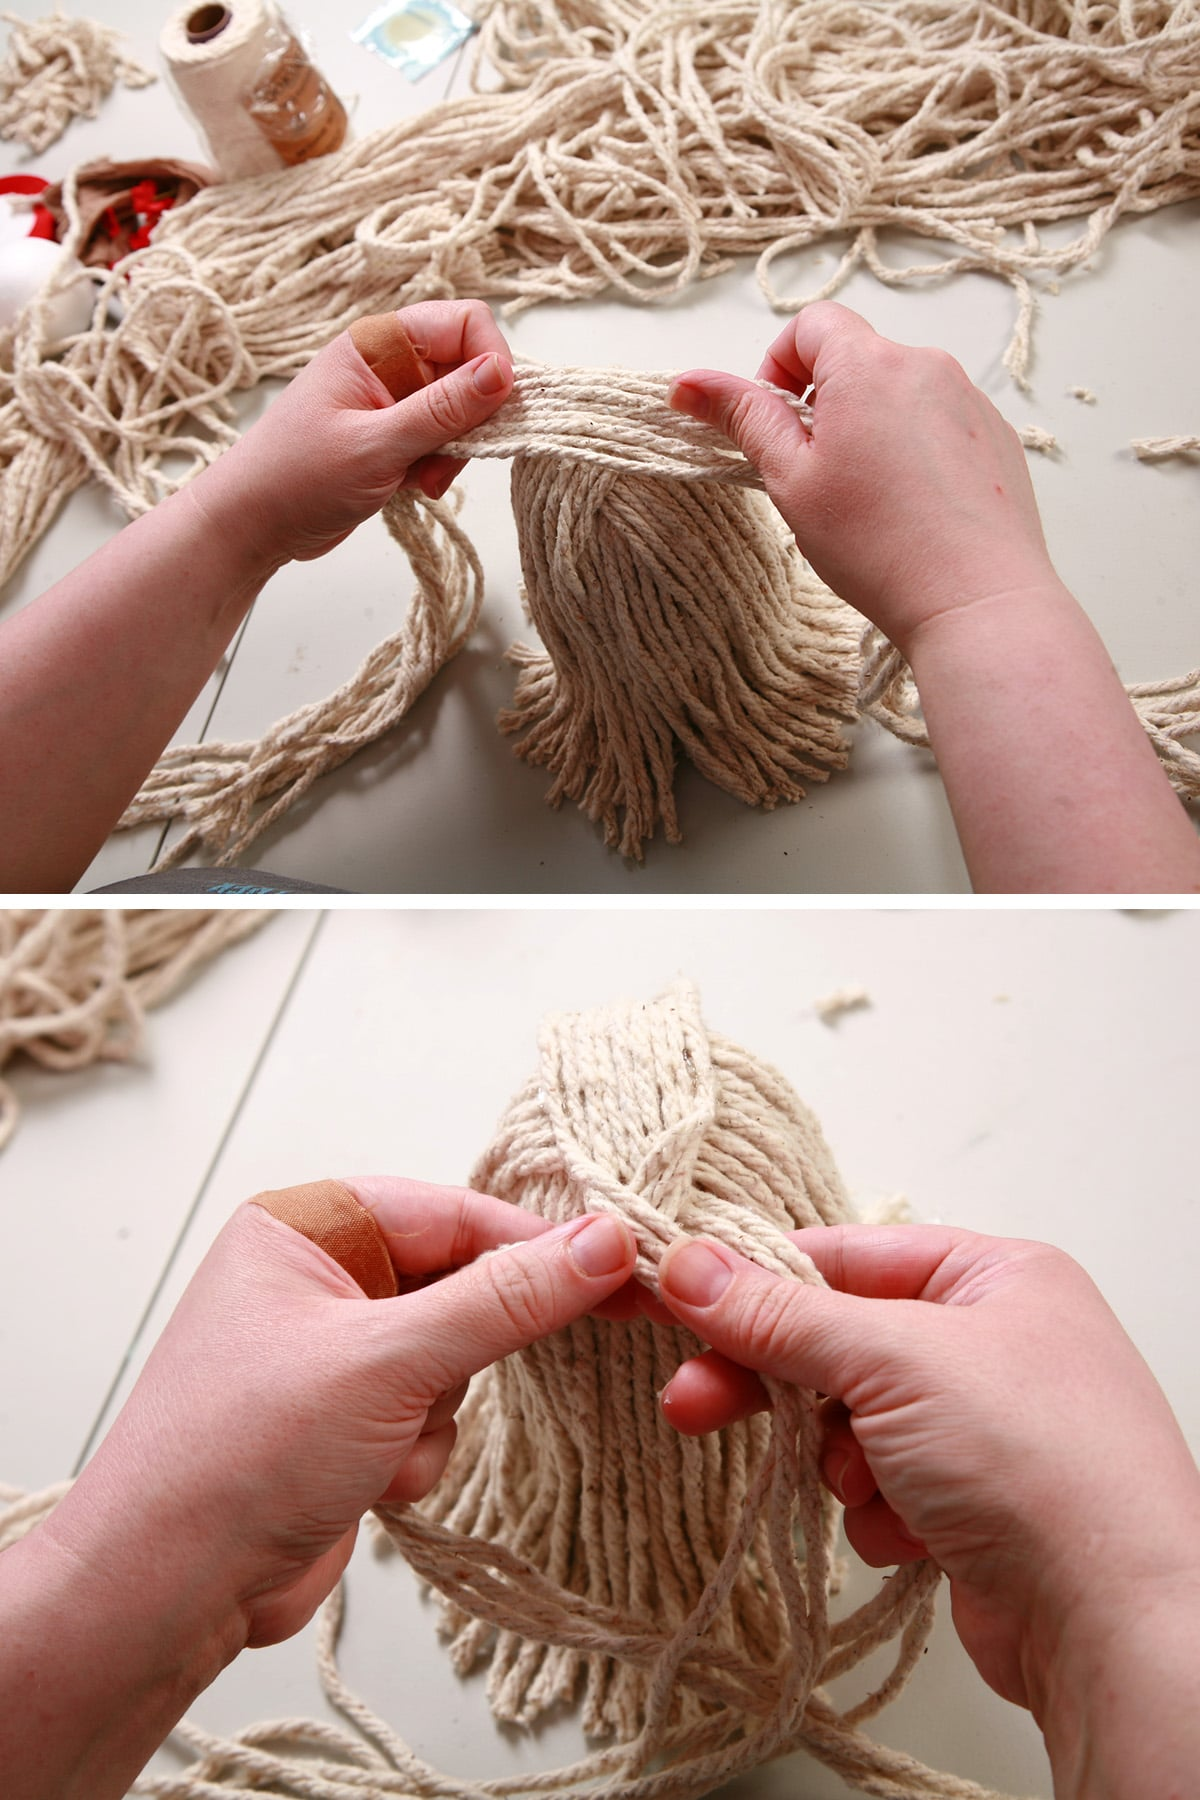 9 strands of yarn being glued down and braided.